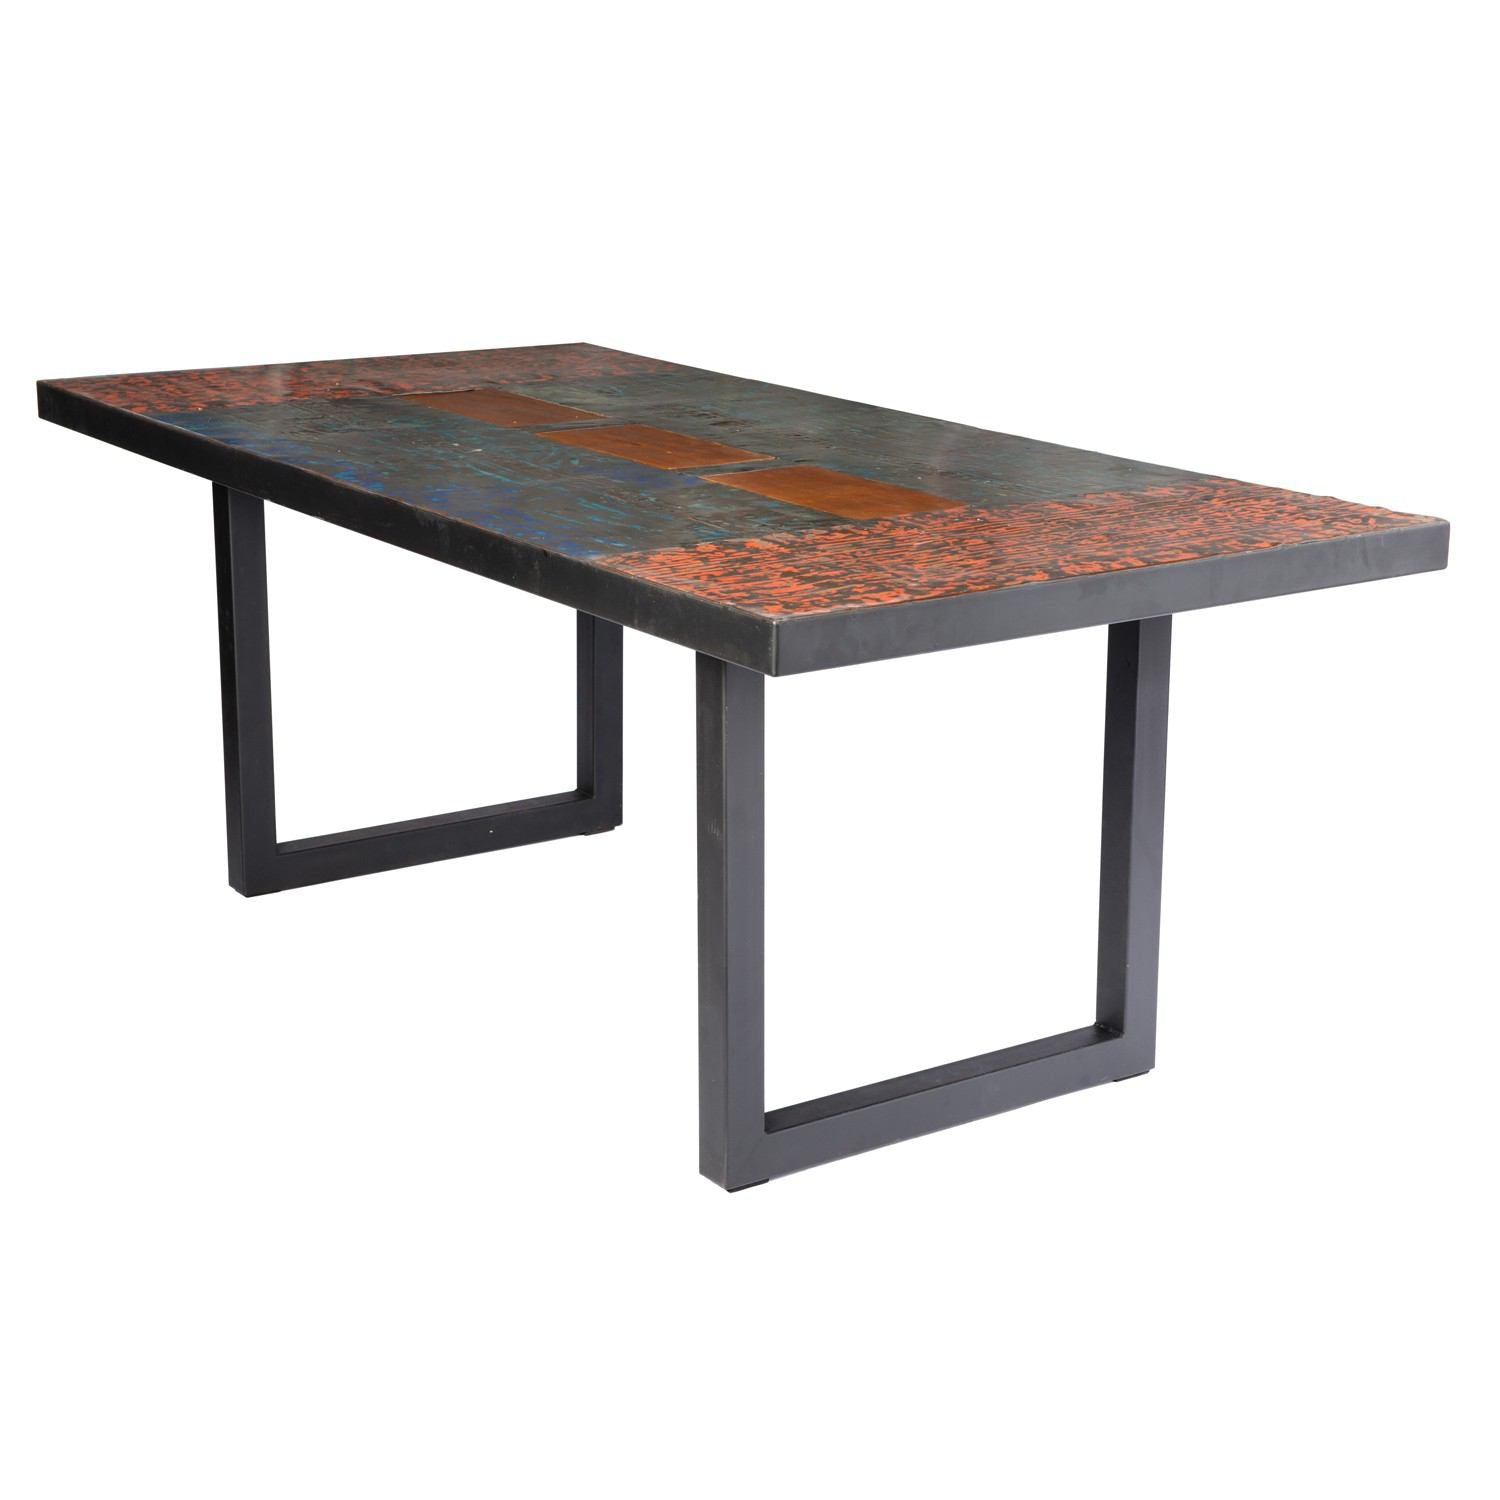 Metal Recycled Oil Drum Dining Room Table R-2010 by AIRE Furniture